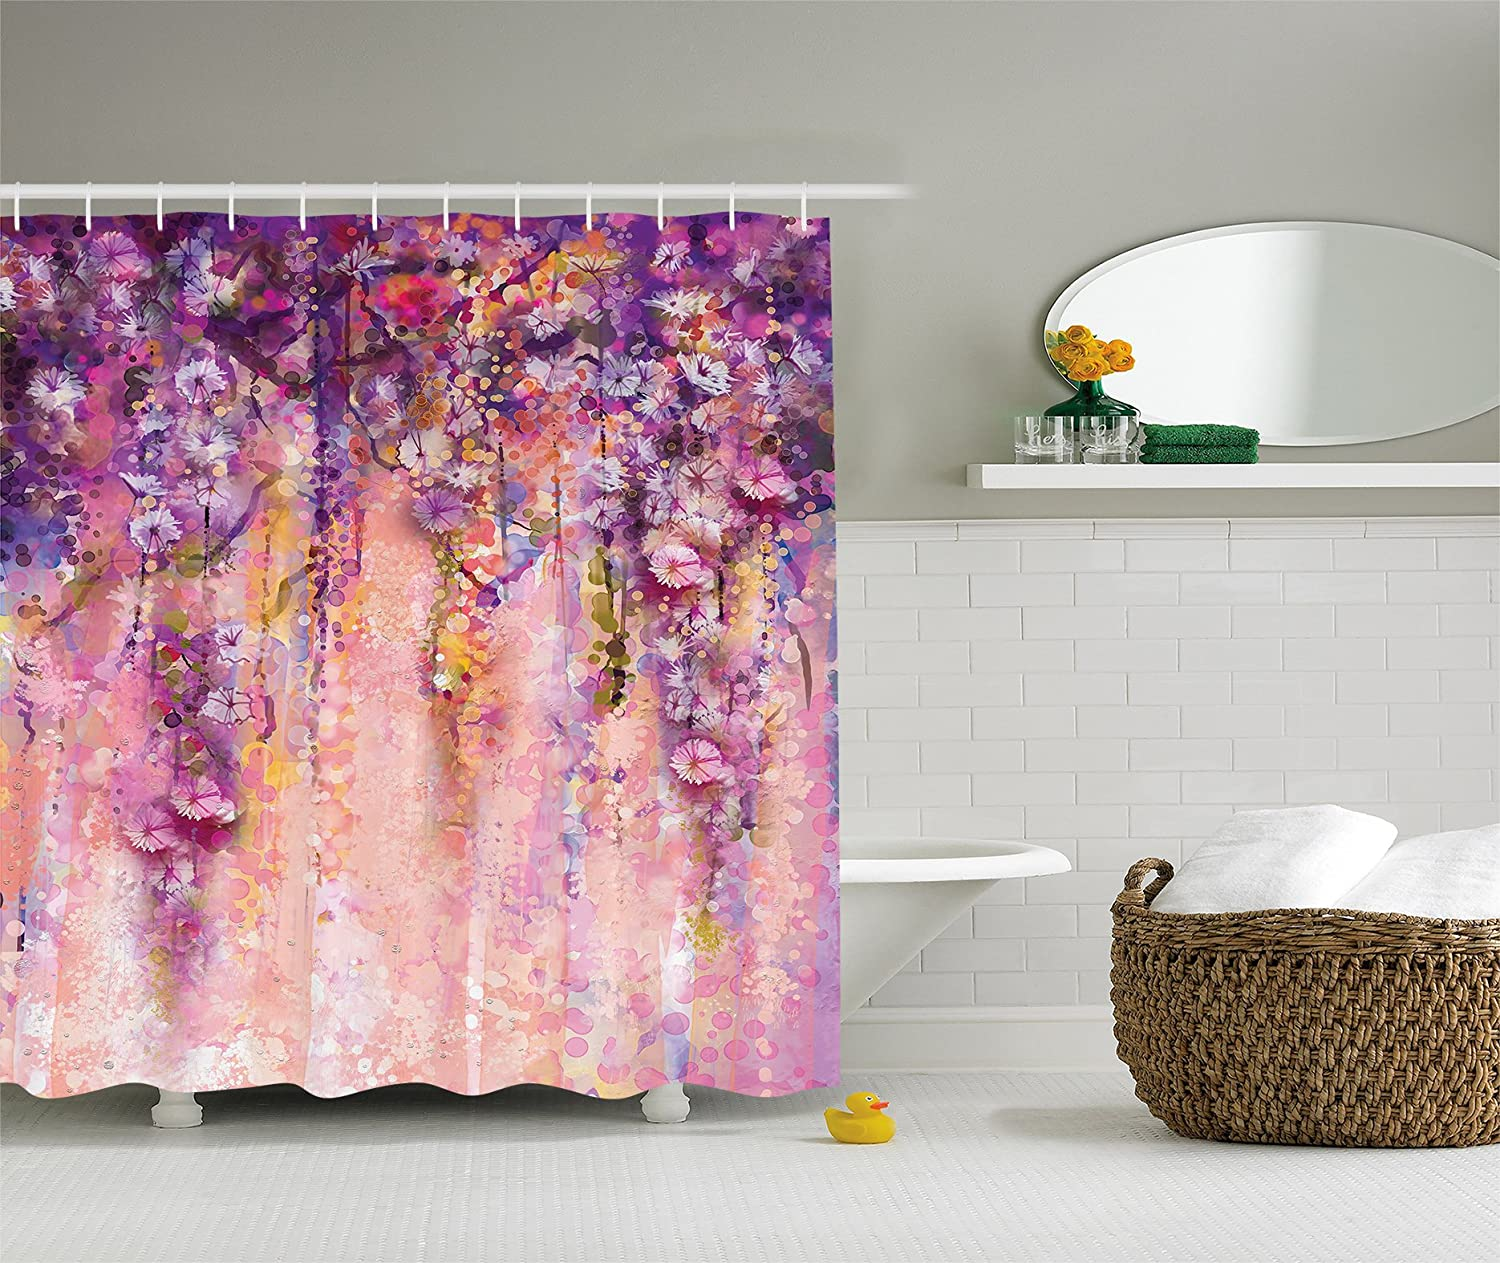 Curtain Spring Flowers Decor By Wisteria Blossoms Watercolor Painting Effect And Bubble Fabric Bathroom Shower 84 Inches Extra Long Purple